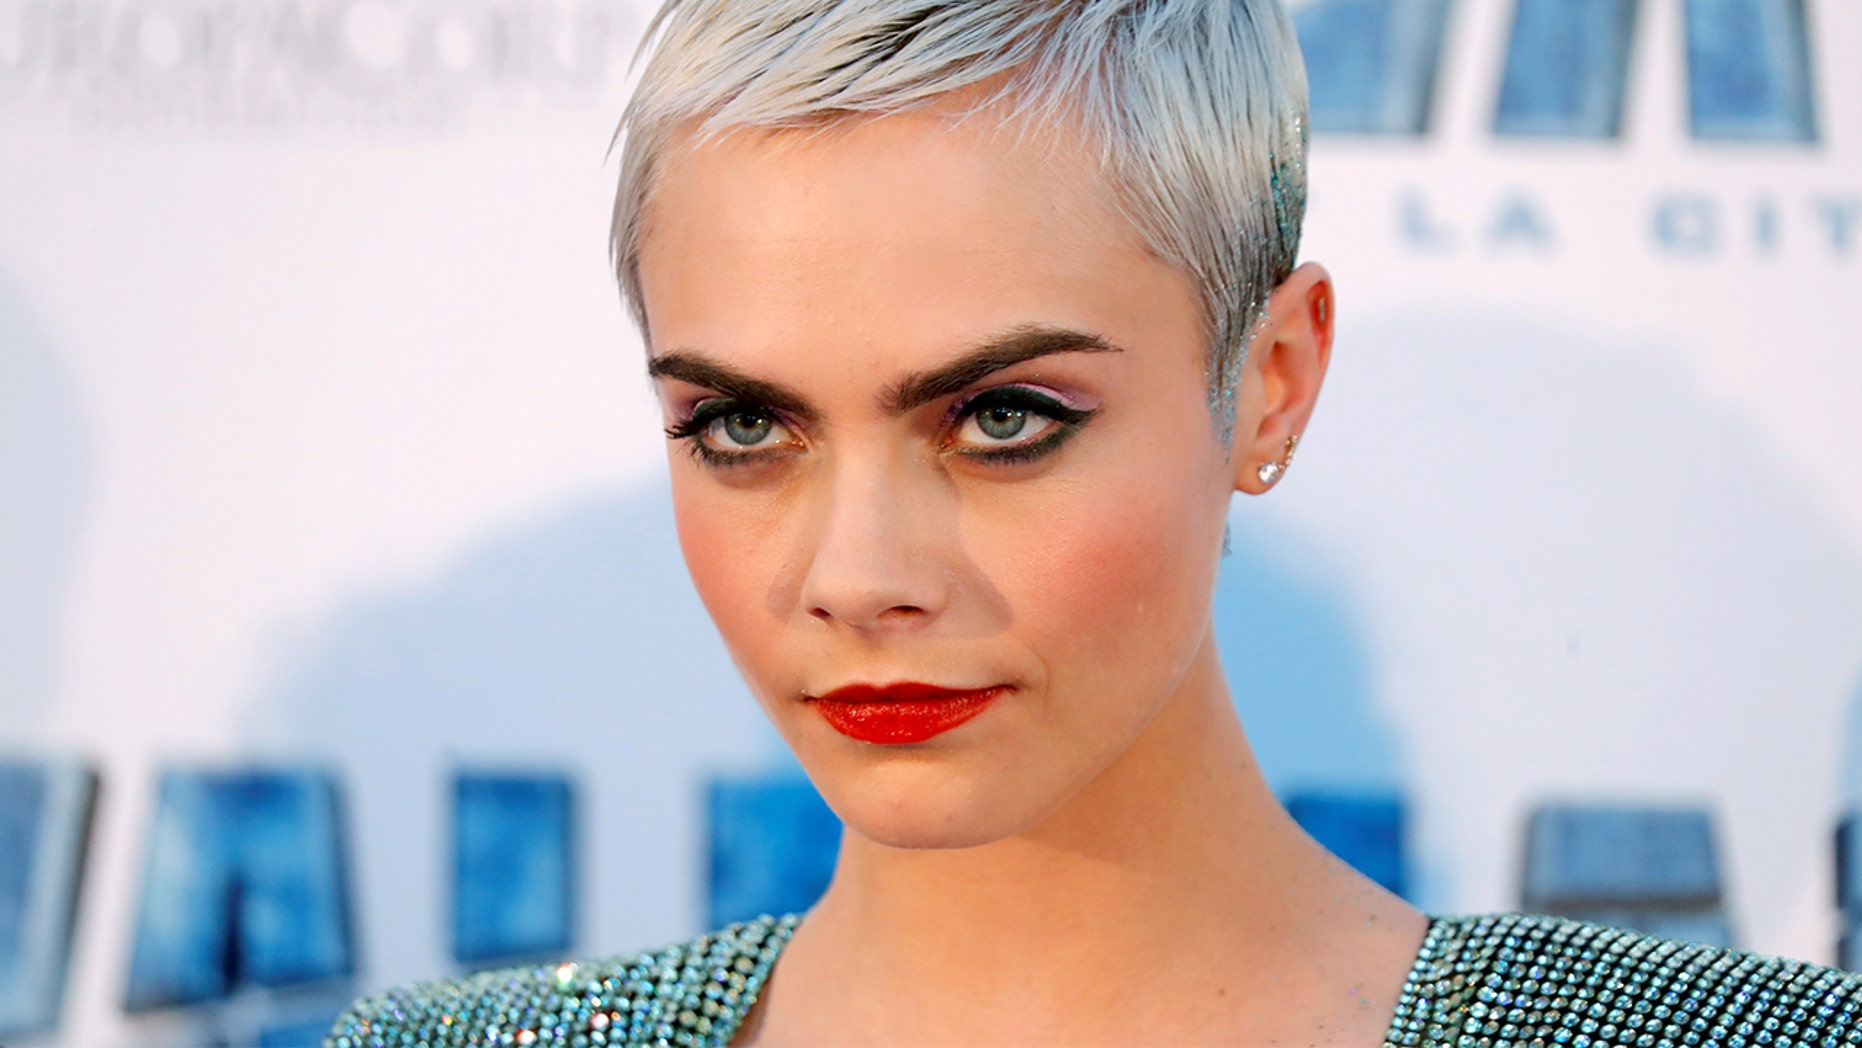 25-year-old actress and model Cara Delevingne was named the face of Dior's new anti-aging line, which caused a controversy